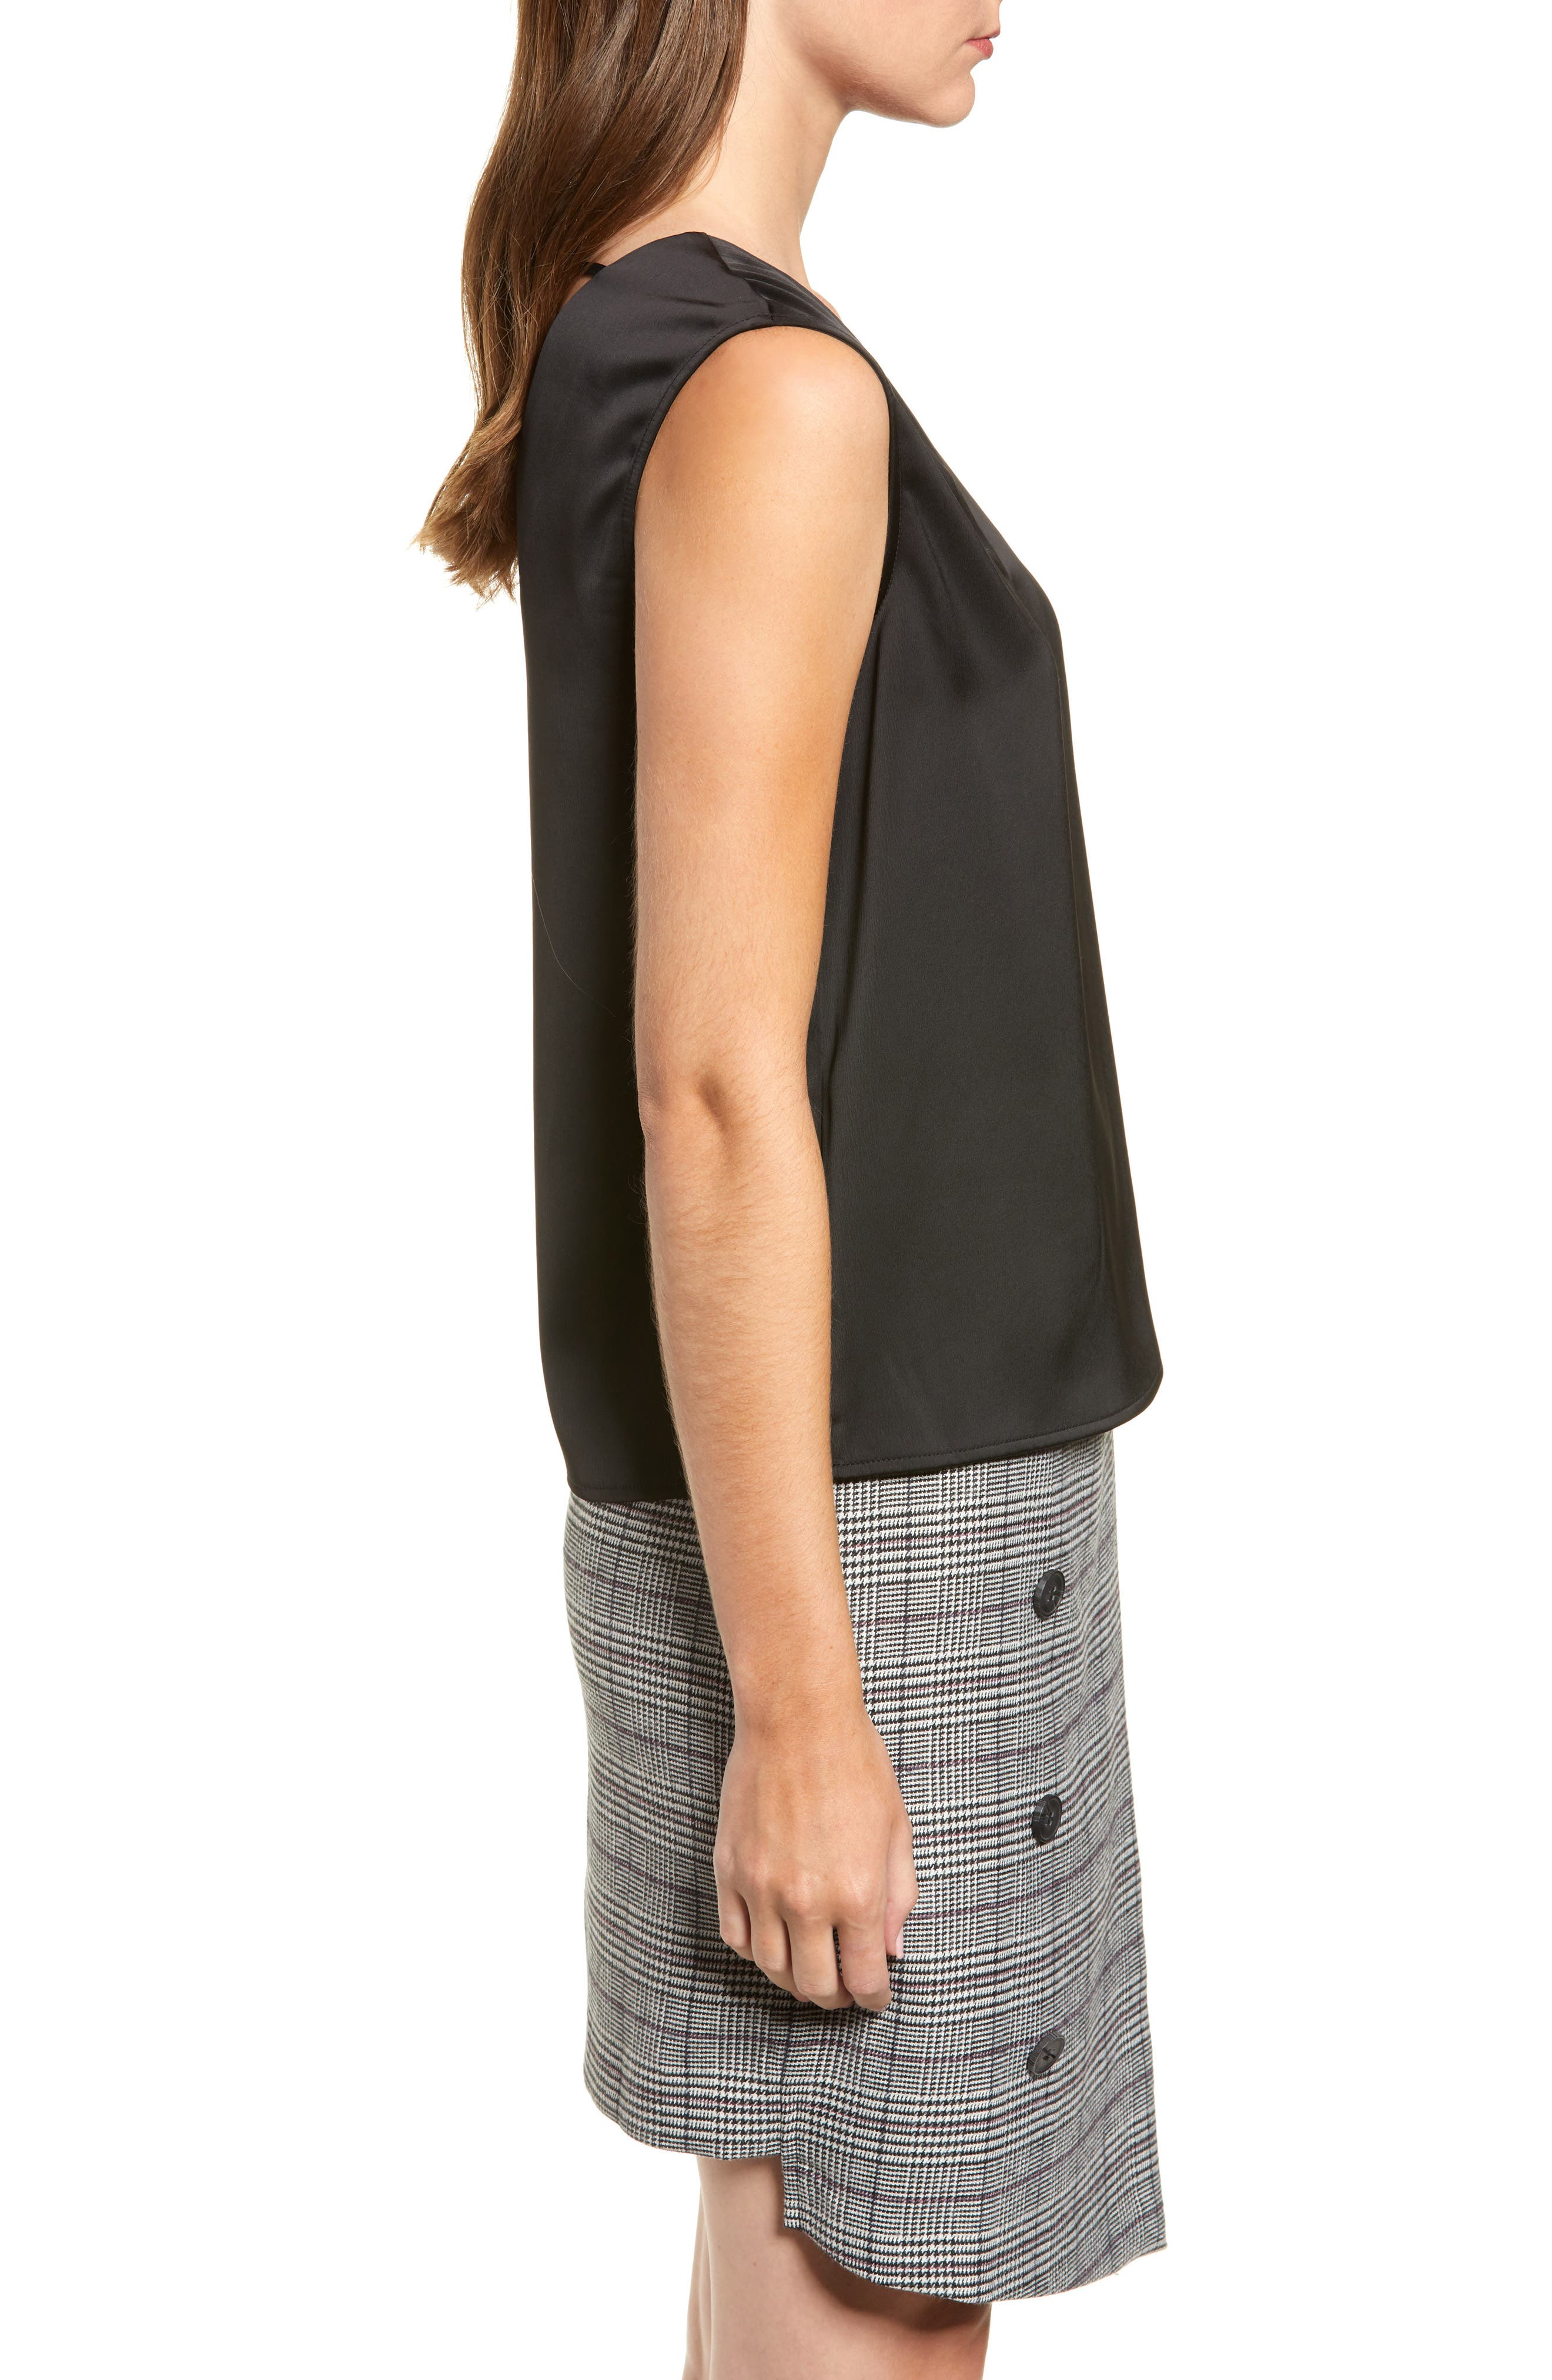 Chriselle Lim Veronica V-Neck Tank,                             Alternate thumbnail 4, color,                             001